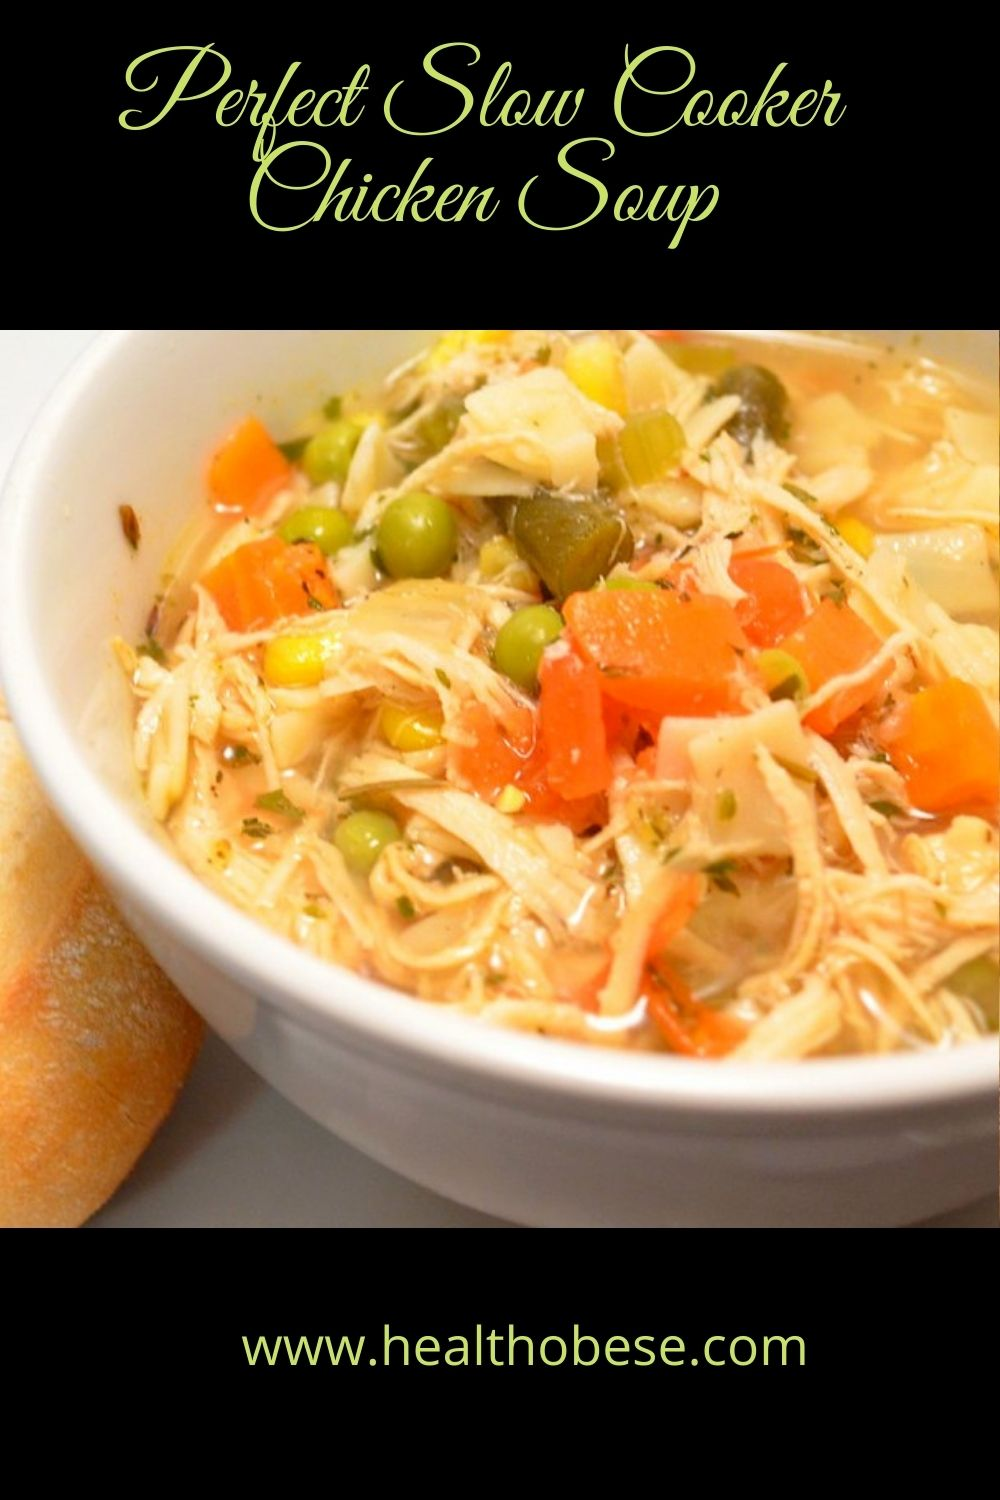 Perfect Slow Cooker Chicken Soup